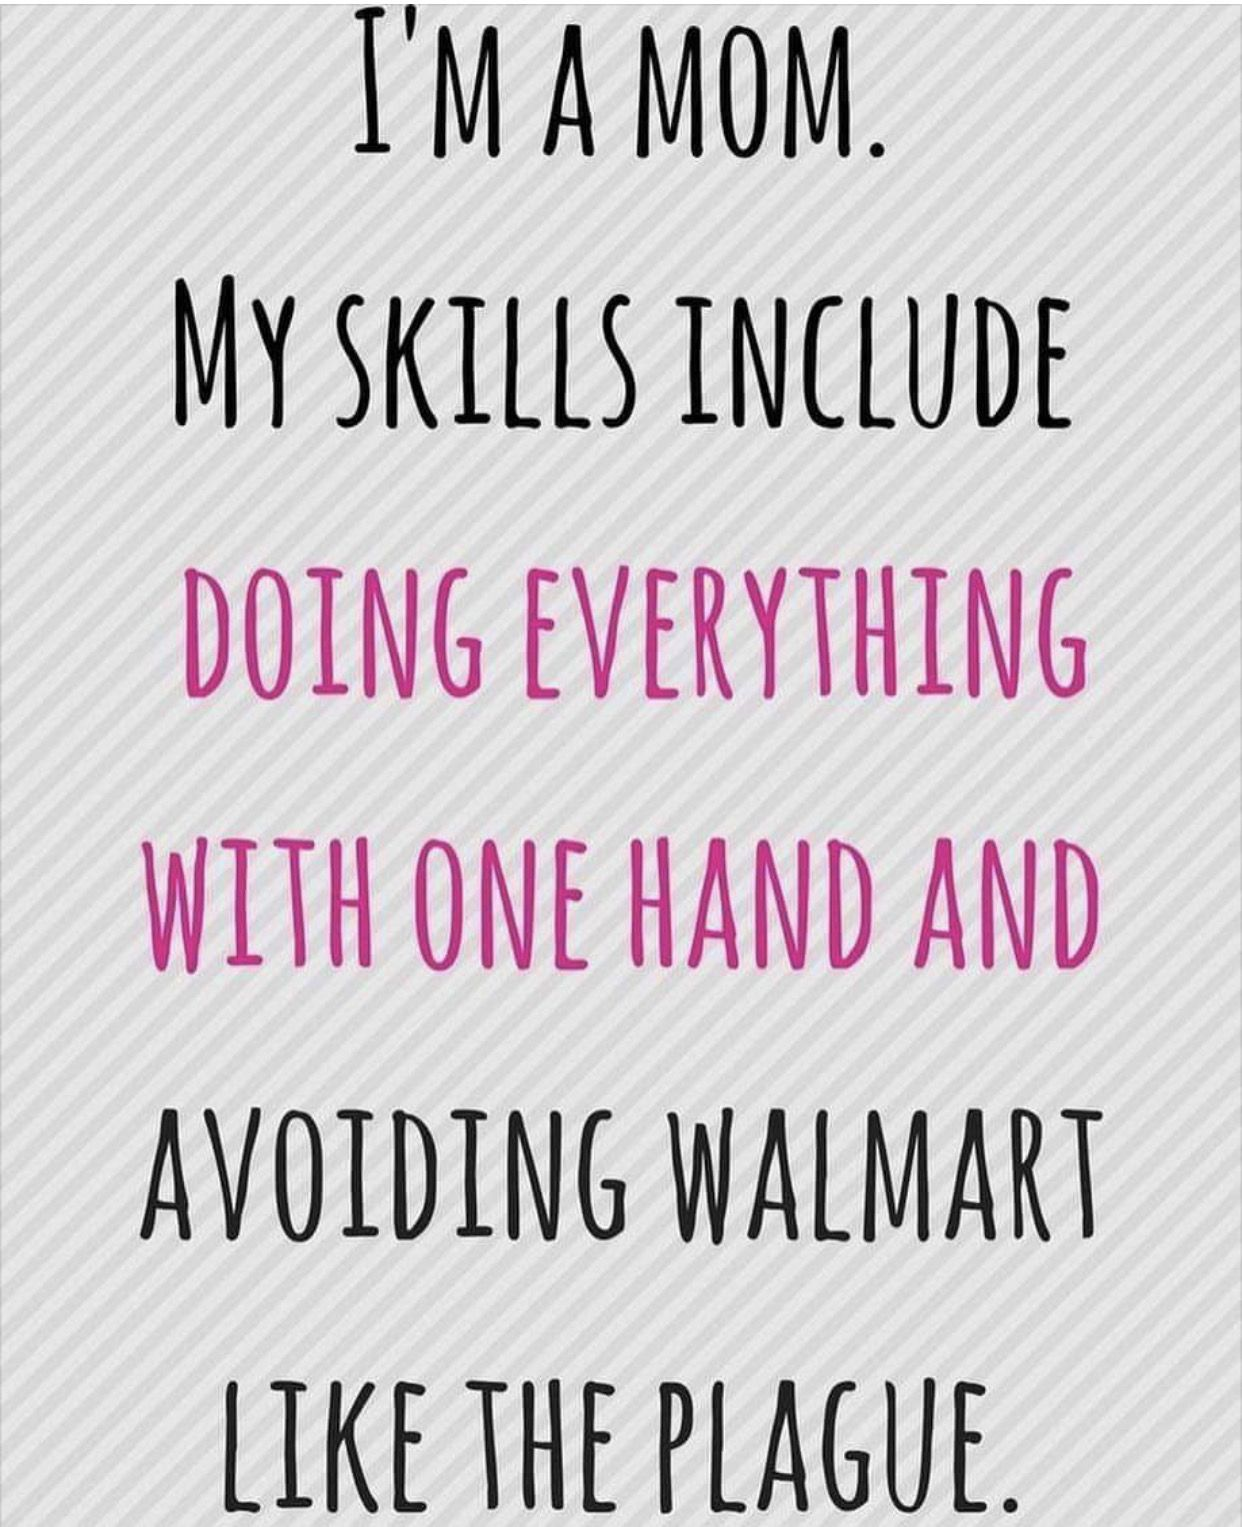 Pin by Amy Meadows on Funny quotes and pictures!! Mom